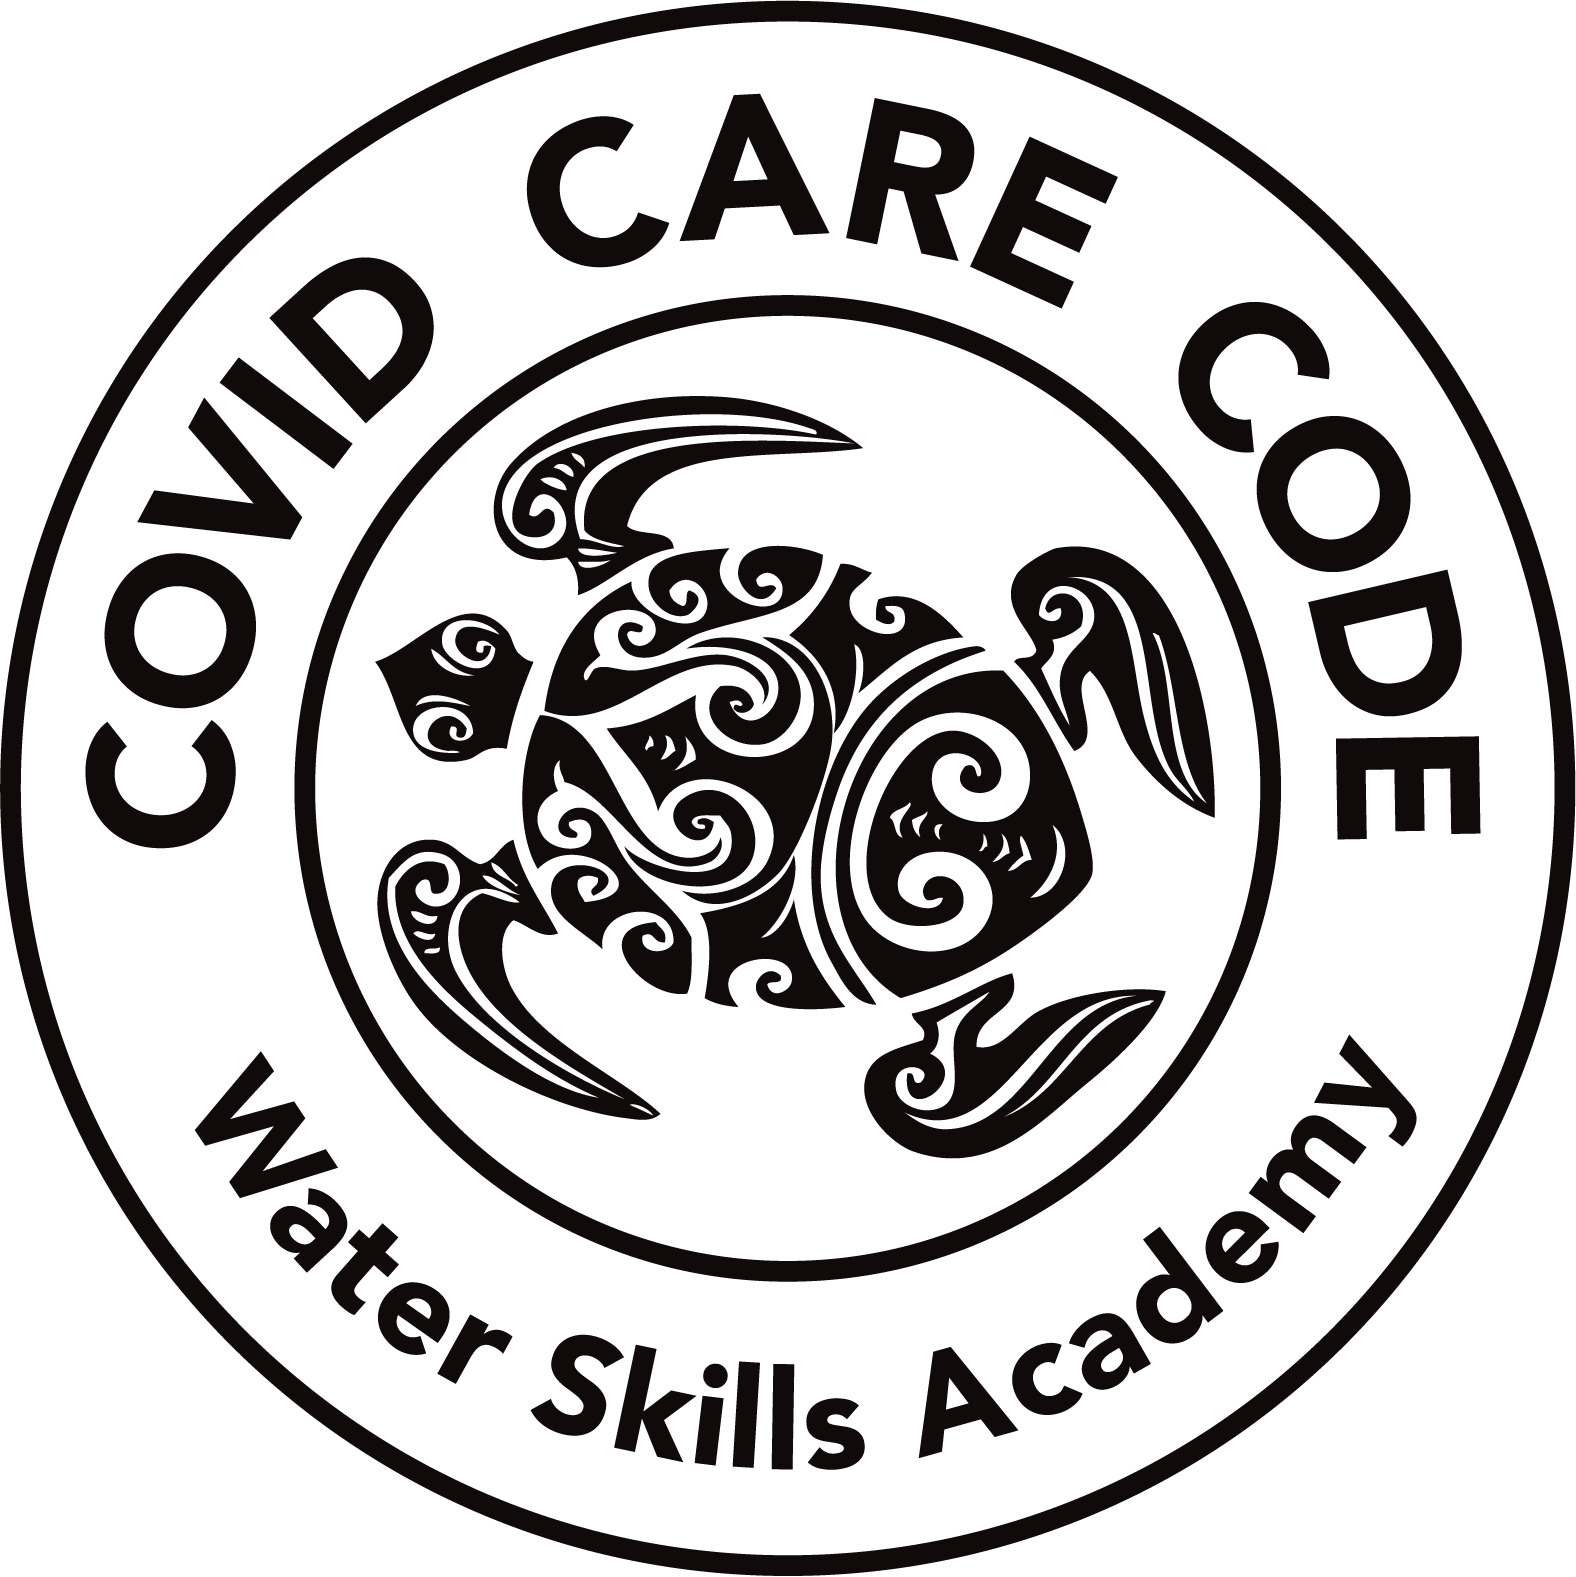 wsa_covid_care_code_final-1.png